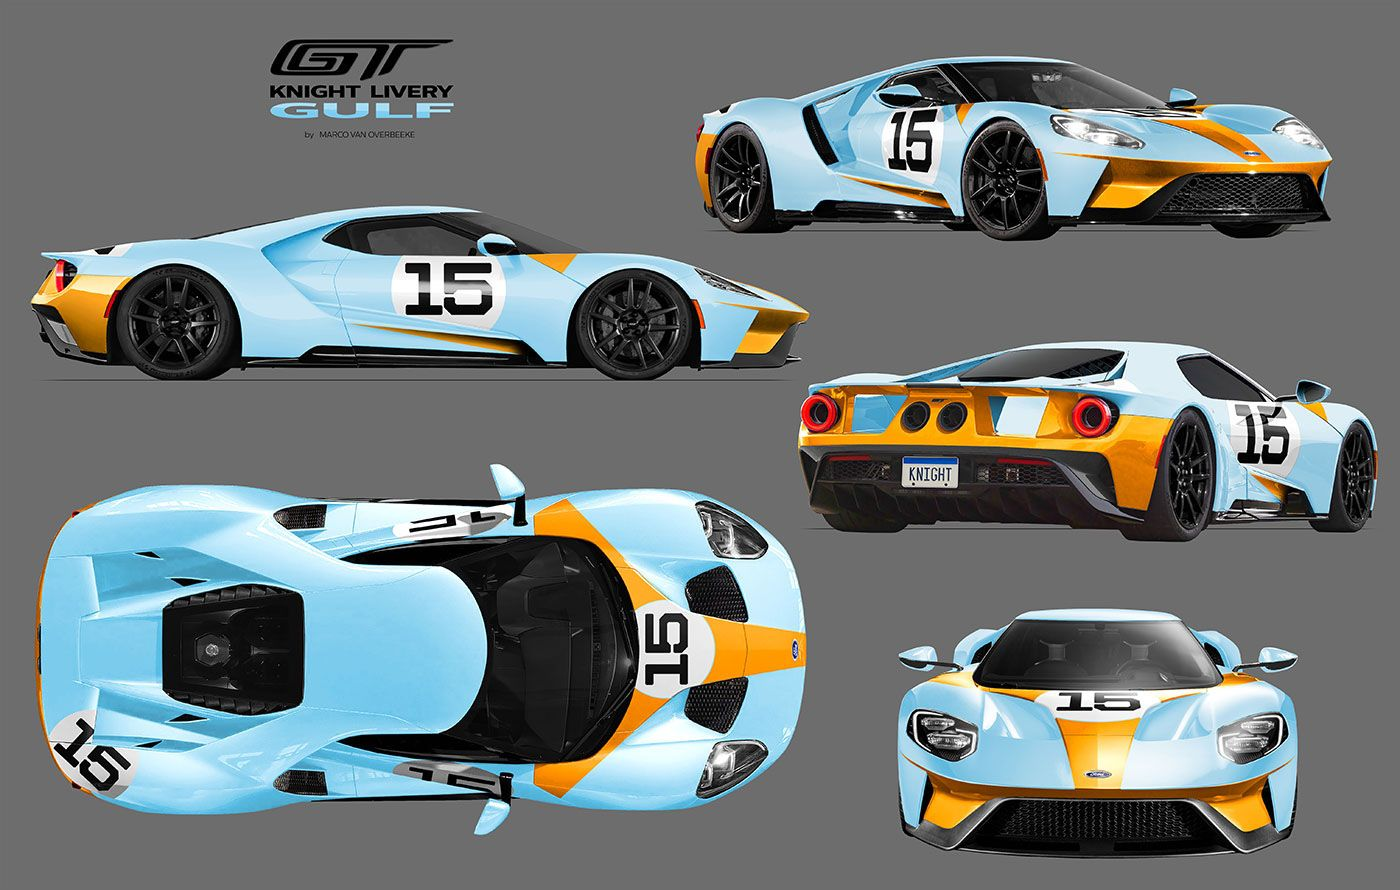 2017 Ford Gt Custom Liveries Knight Livery Ford Gt Gt Cars Ford